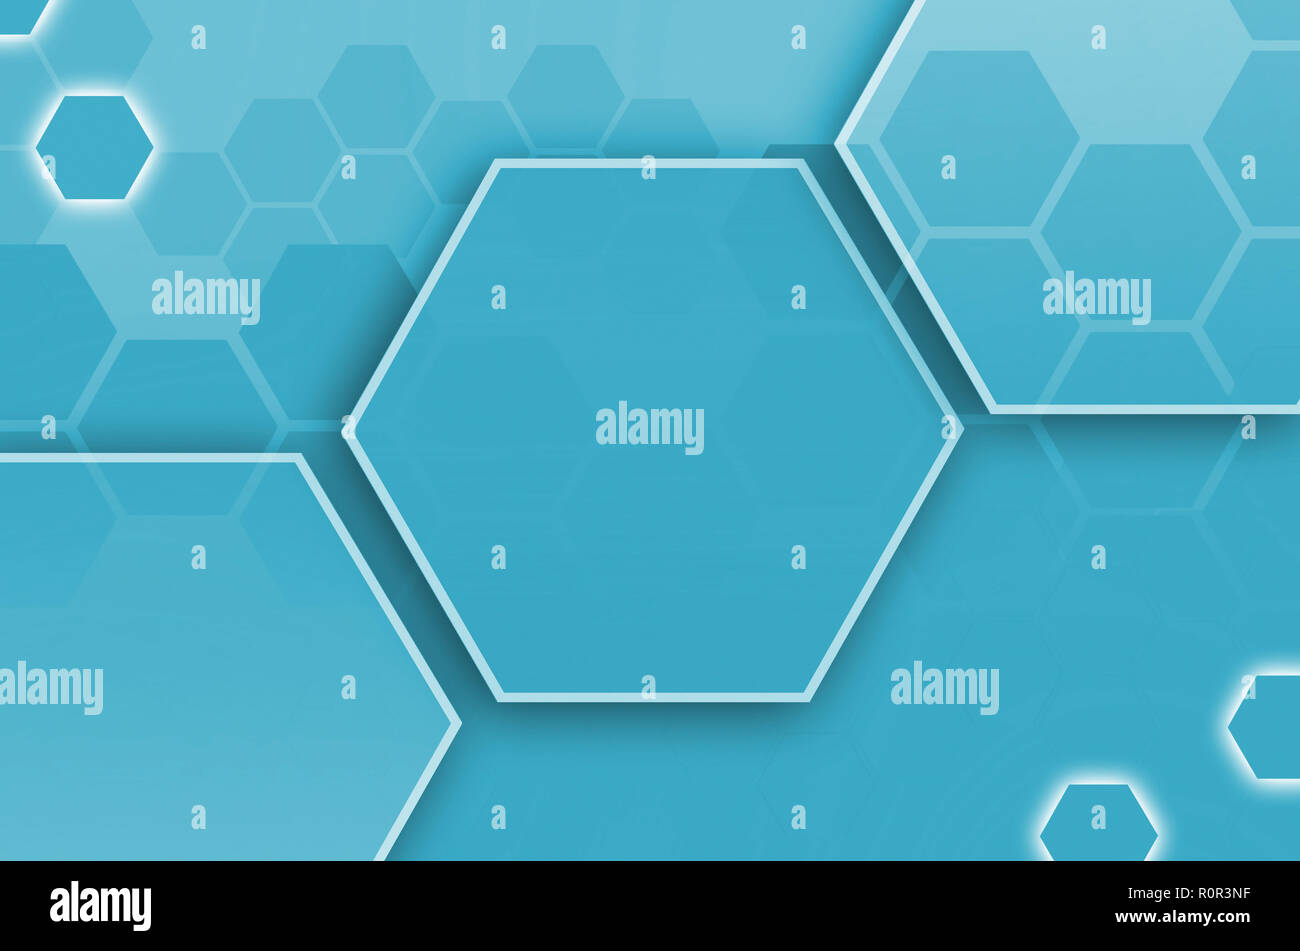 Abstract technological background consisting of a set of hexagons and other geometric shapes in blue color - Stock Image